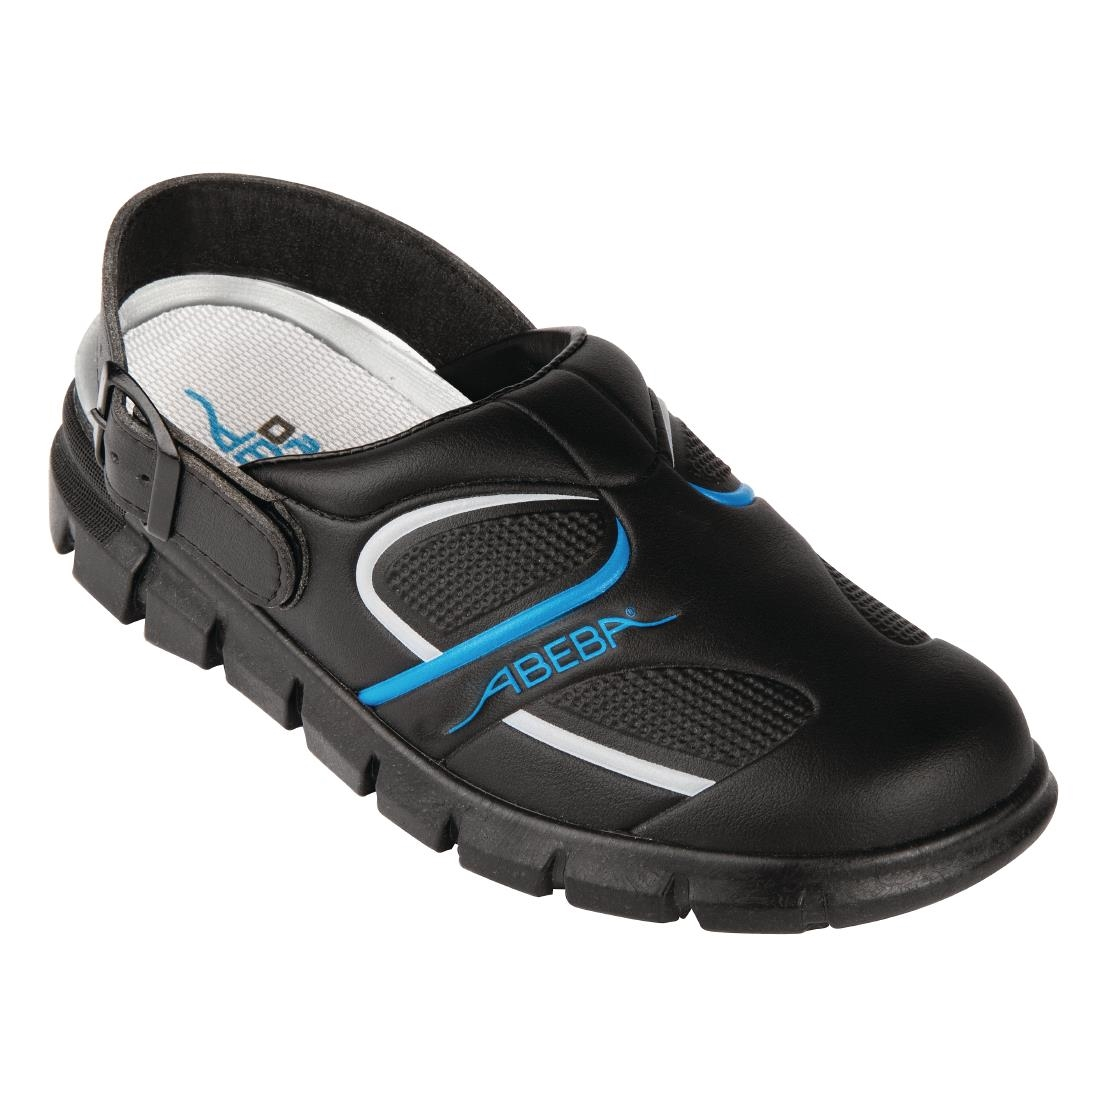 Image of Abeba Dynamic Microfibre Slip On Clogs 43